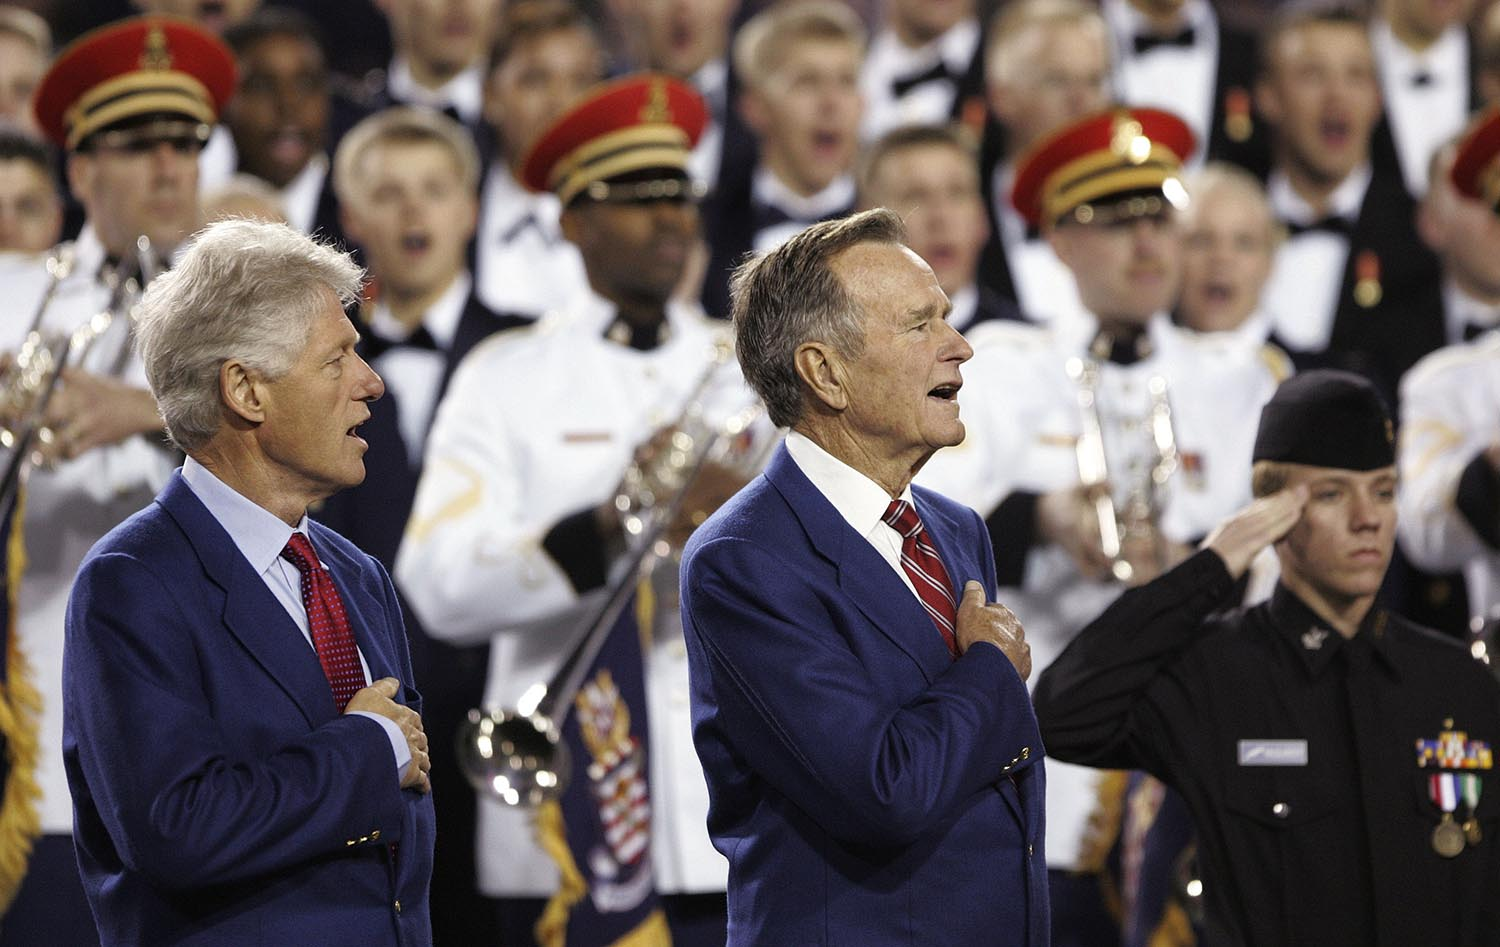 """<div class=""""meta image-caption""""><div class=""""origin-logo origin-image ap""""><span>AP</span></div><span class=""""caption-text"""">2005: The US Military Academy choirs perform the national anthem before Super Bowl XXXIX between the New England Patriots and Philadelphia Eagles at Alltel Stadium. (AP Photo/David J. Phillip)</span></div>"""